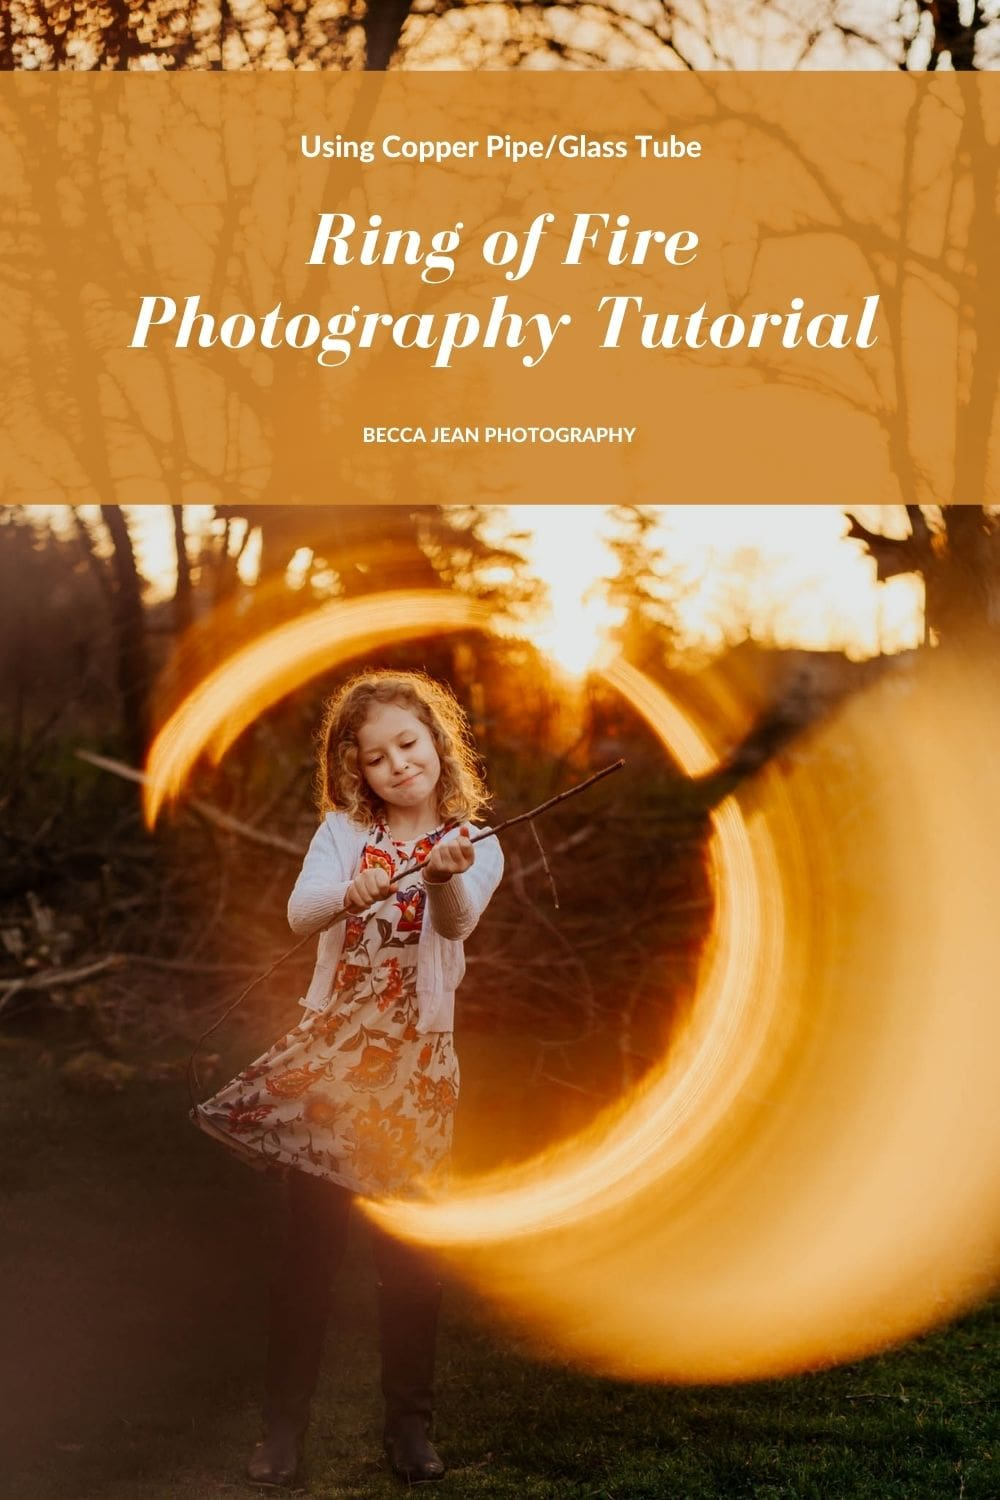 Photography tutorial on how to take photos with a copper pipe or glass tube